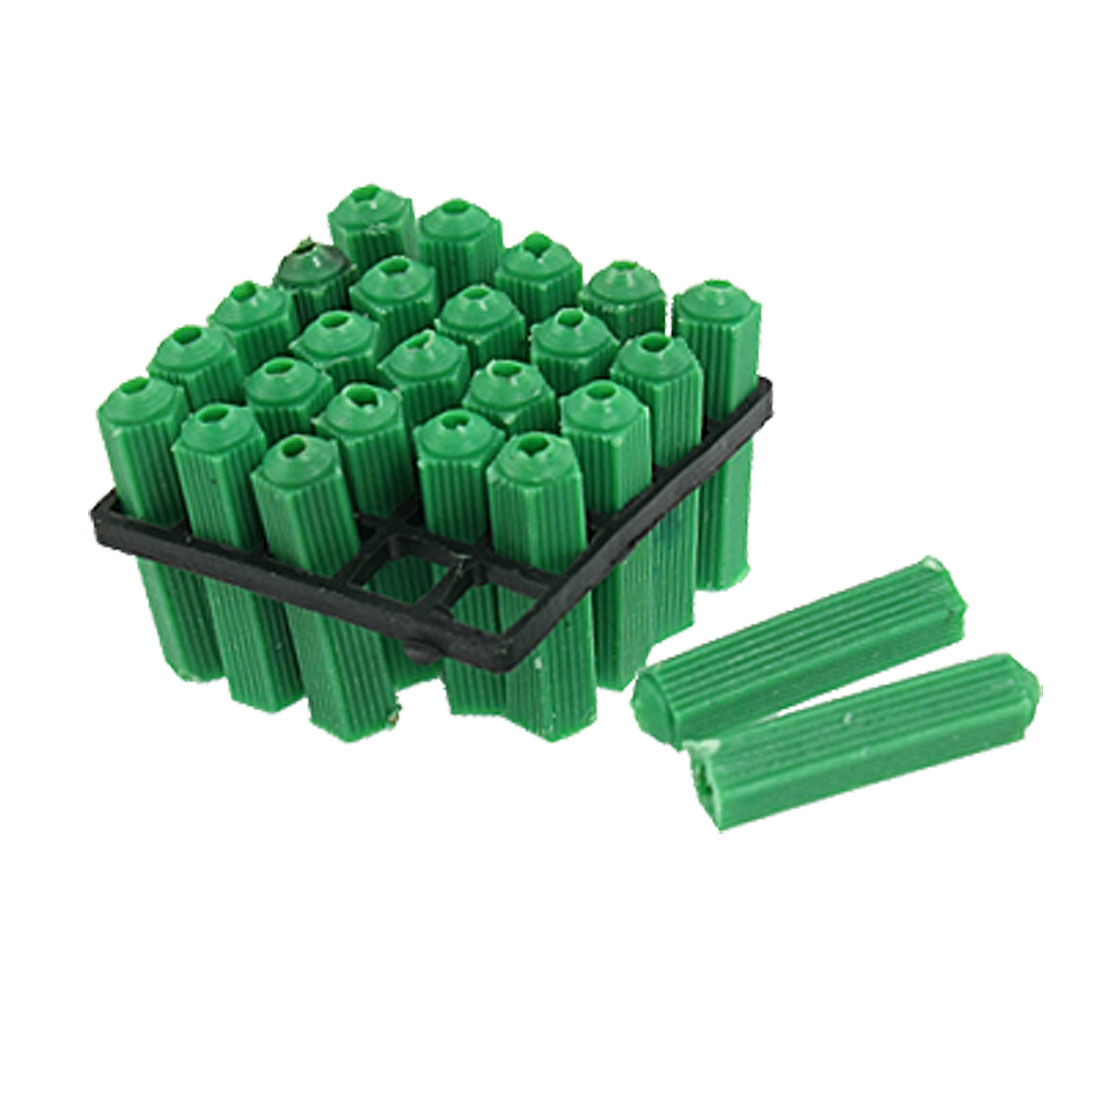 Masonry Fixing Green 8mm Nonslip Plastic Wall Connector 125 Pcs